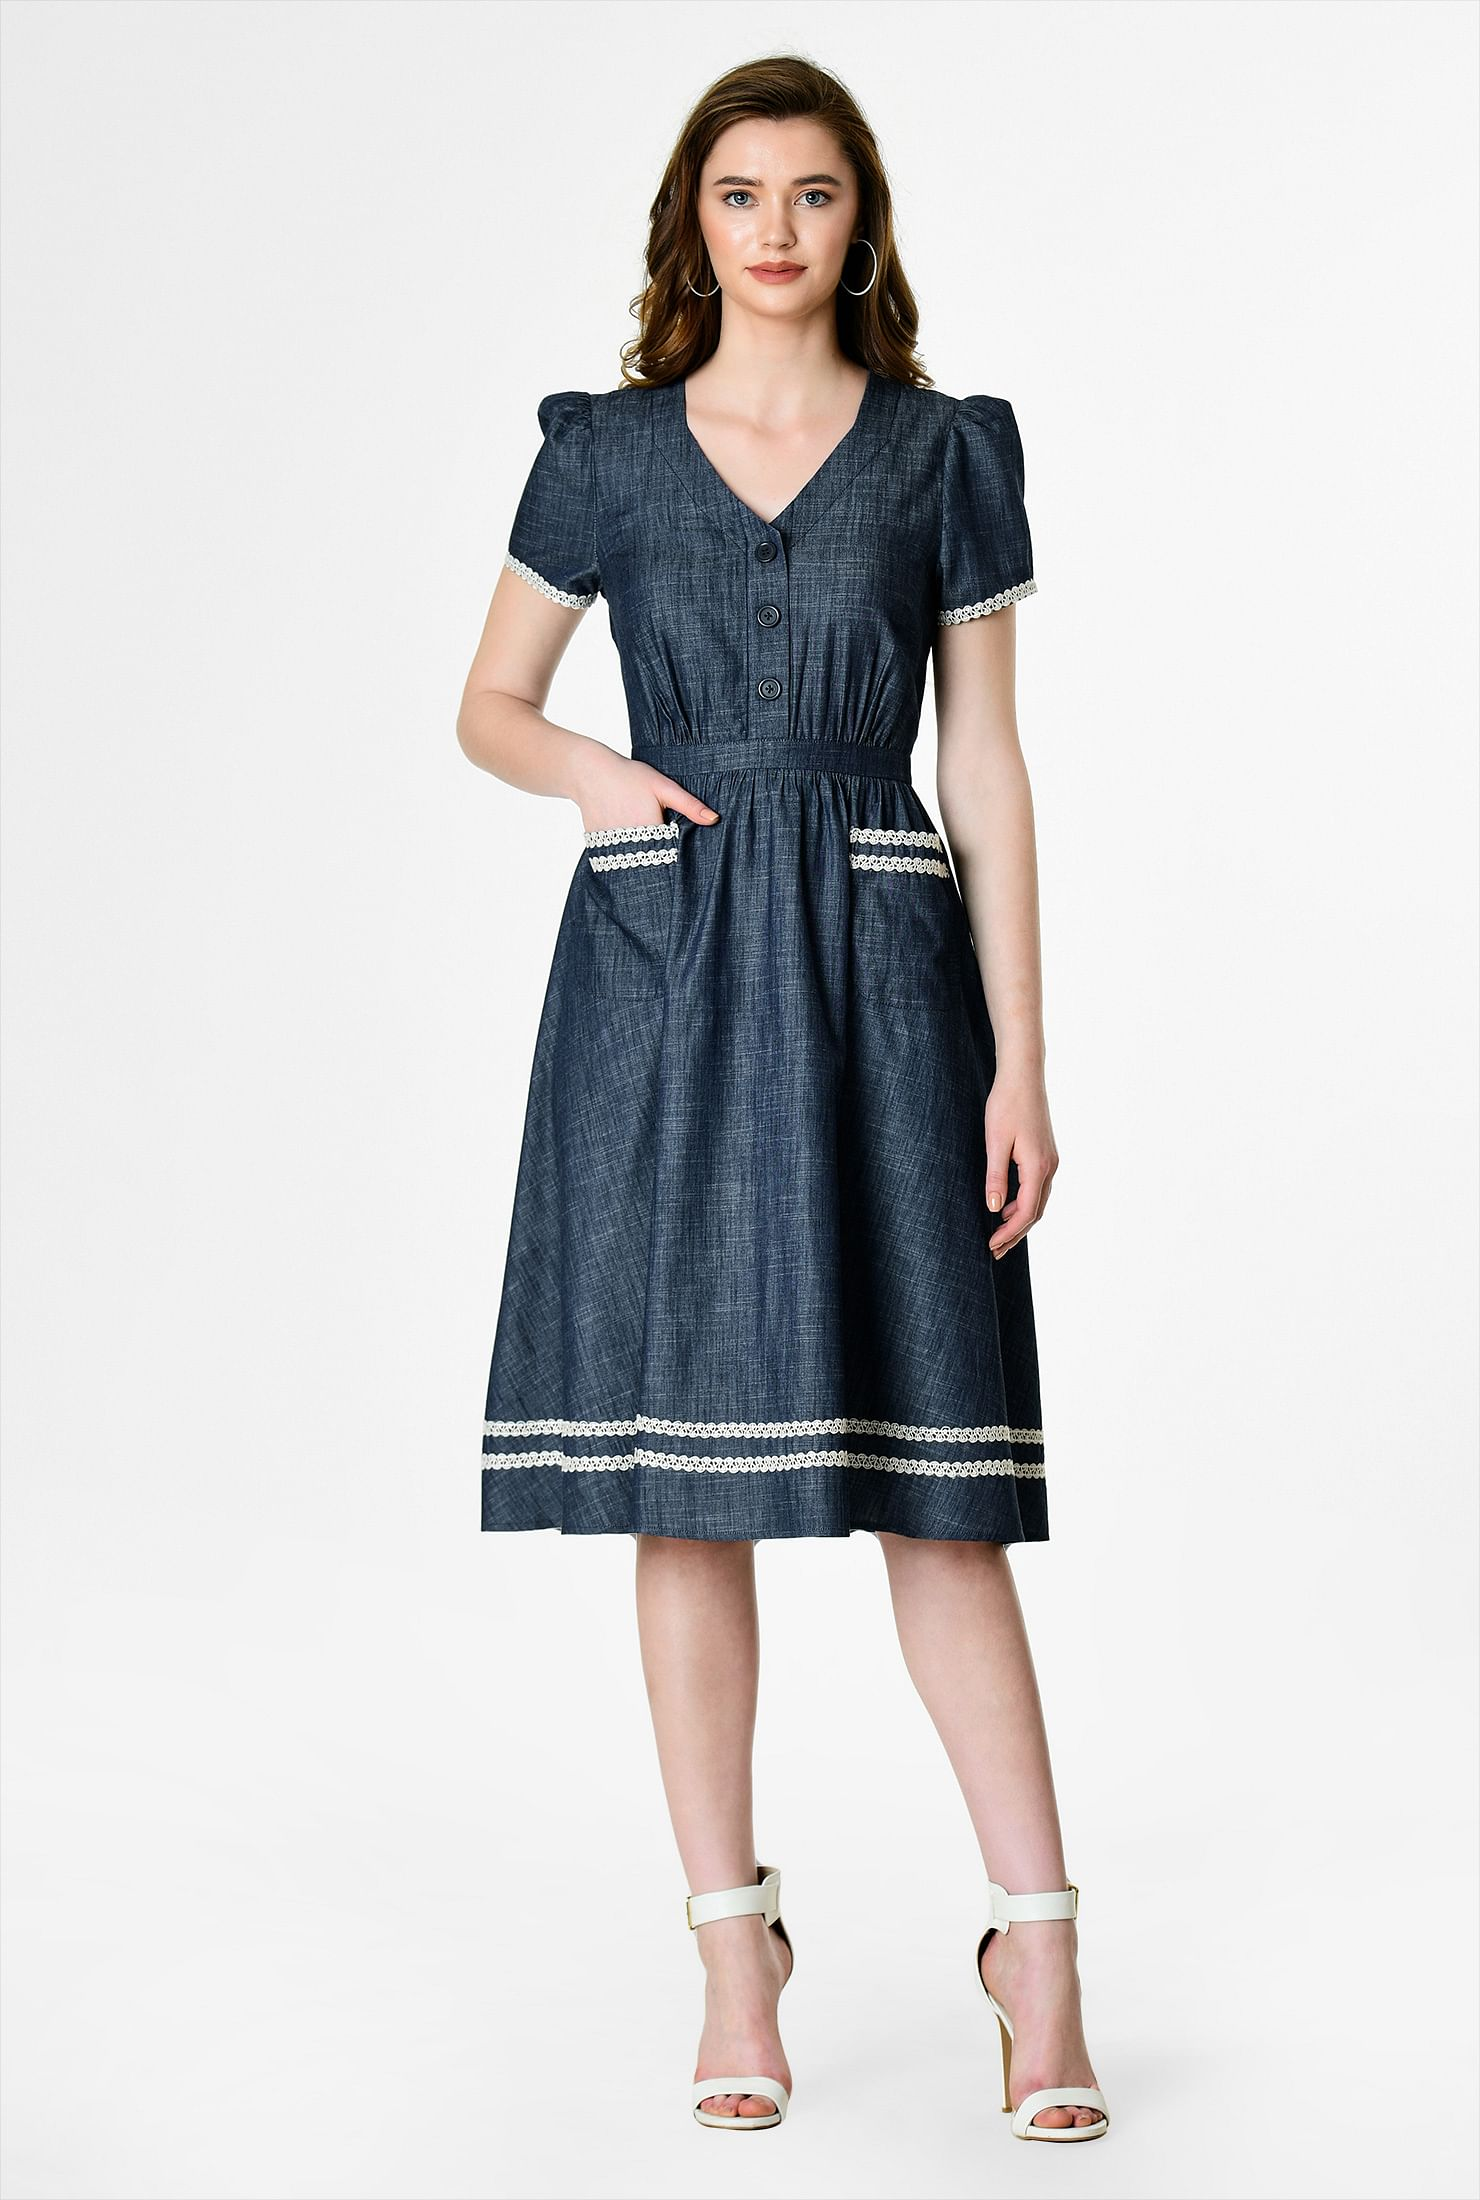 500 Vintage Style Dresses for Sale | Vintage Inspired Dresses Lace trim cotton chambray dress $59.95 AT vintagedancer.com